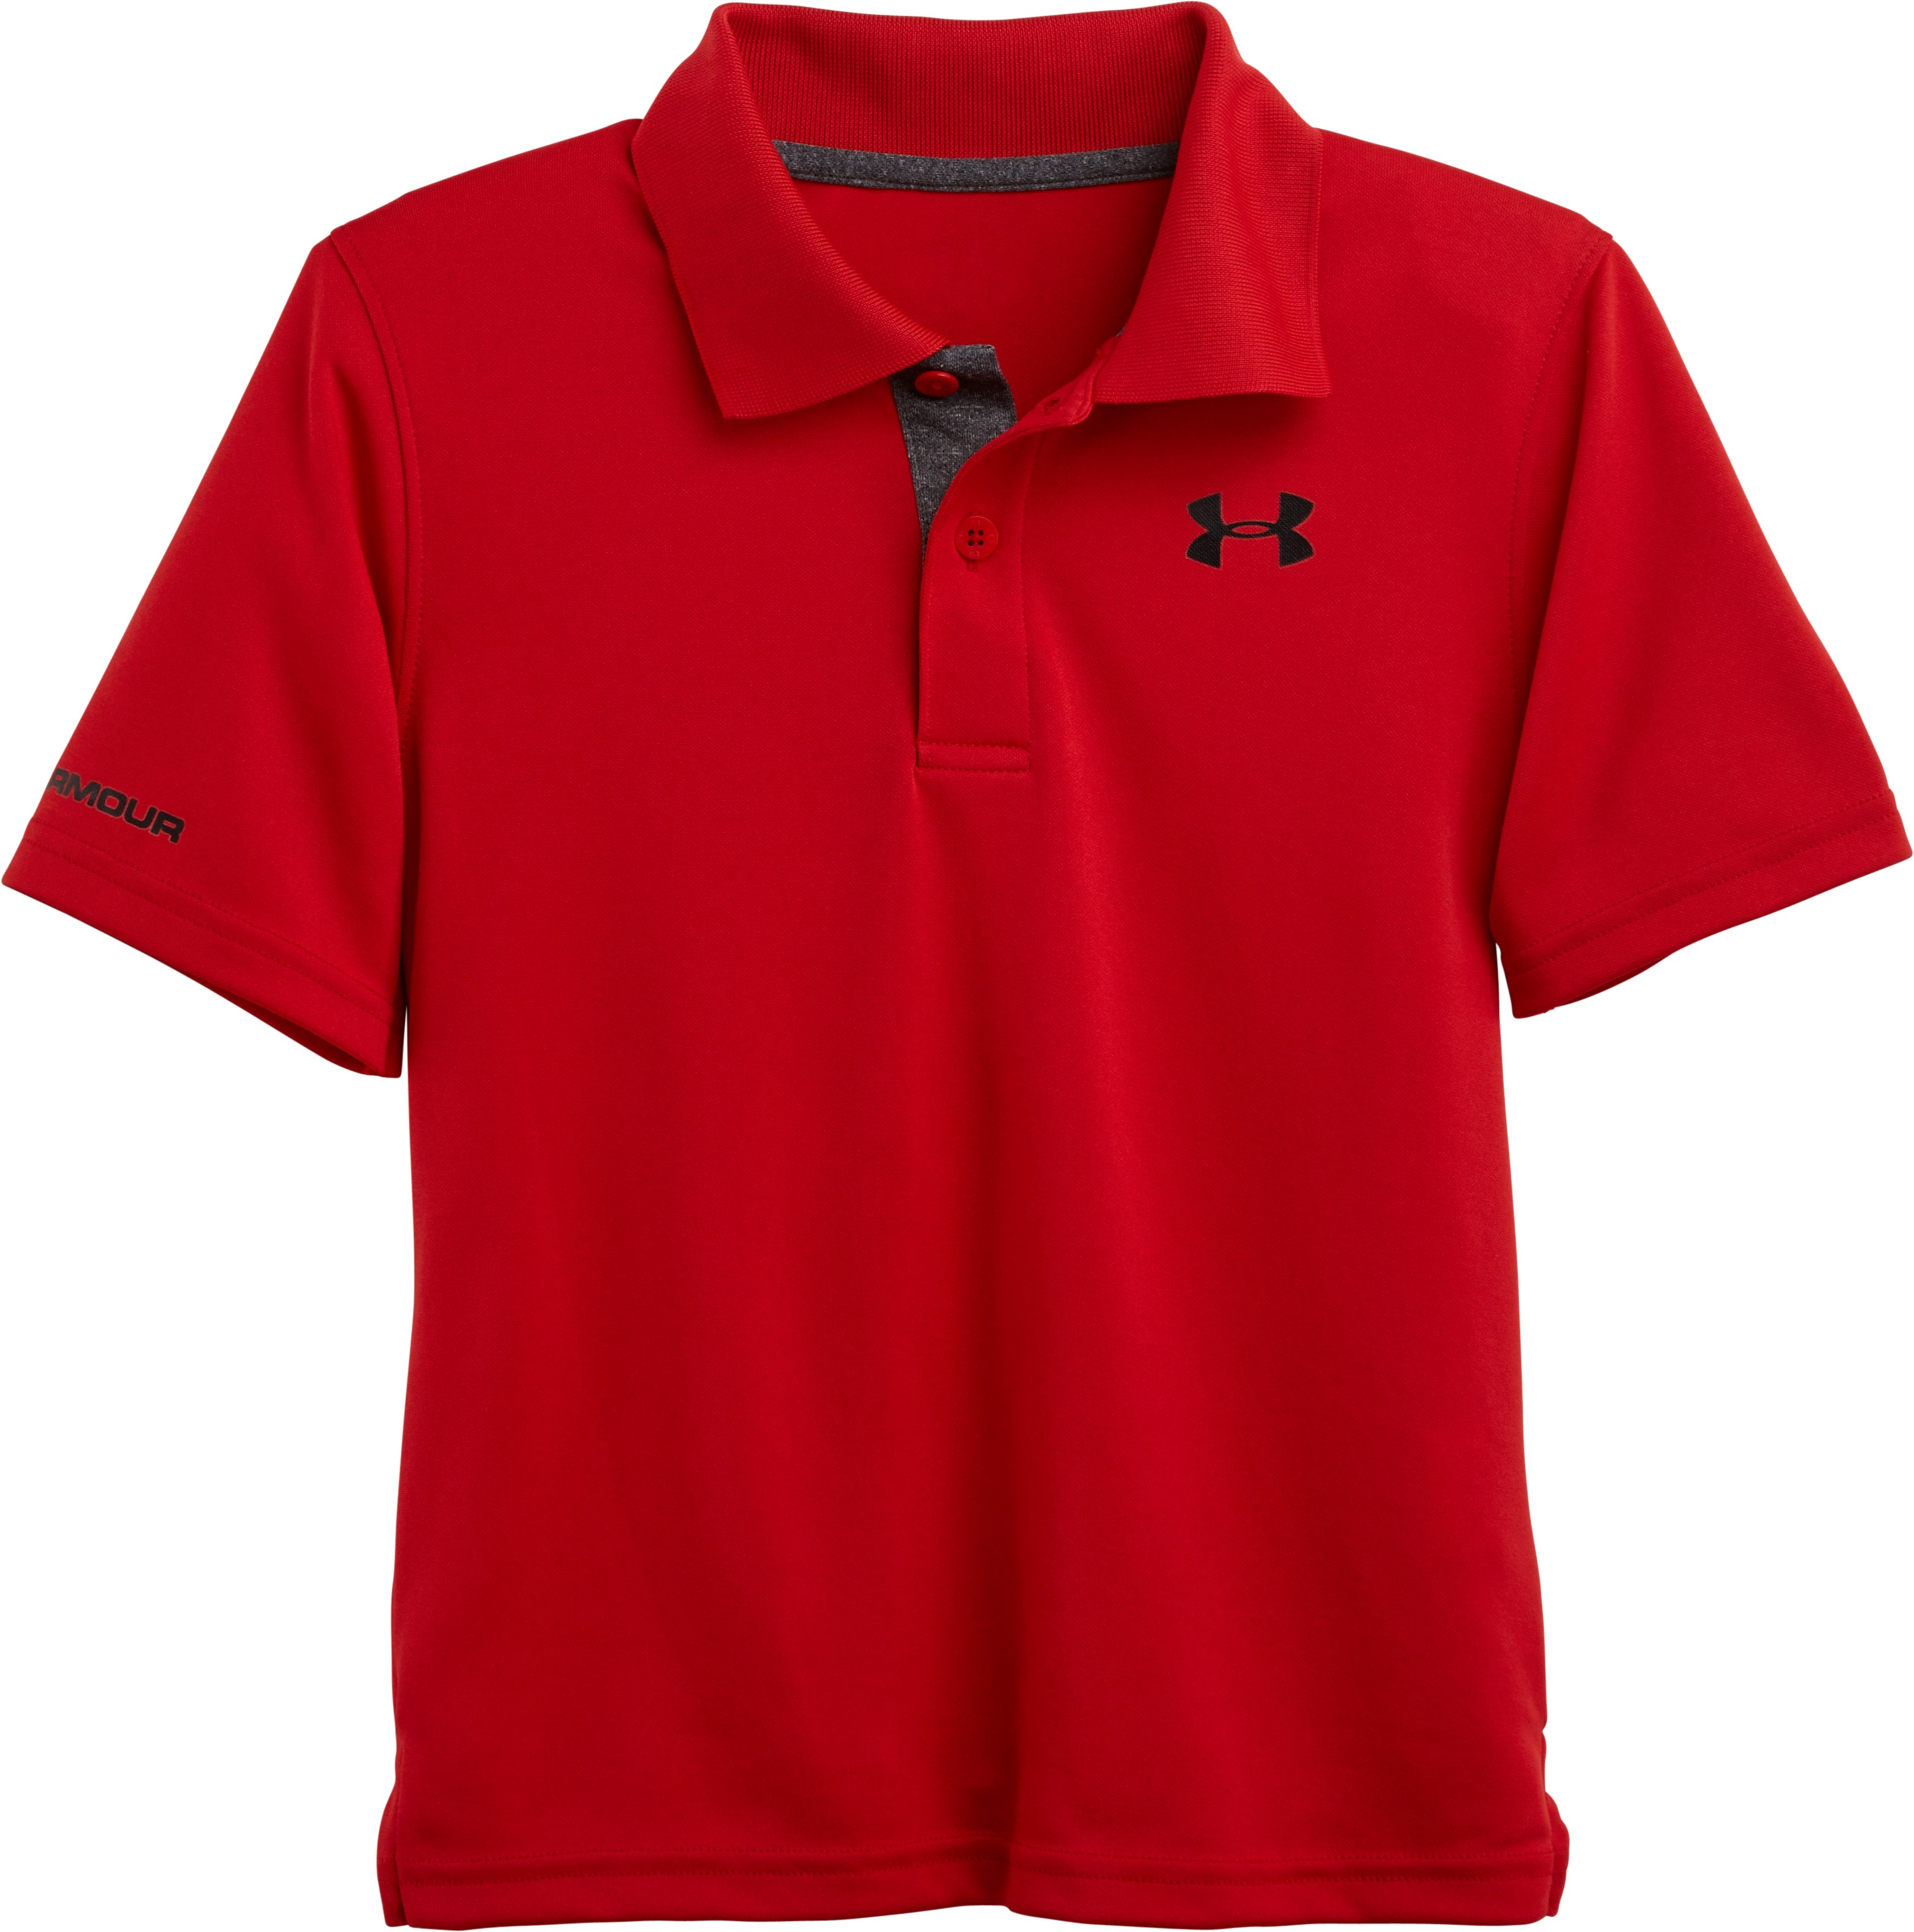 Boys' Pre-School UA Match Play Polo, Red, zoomed image